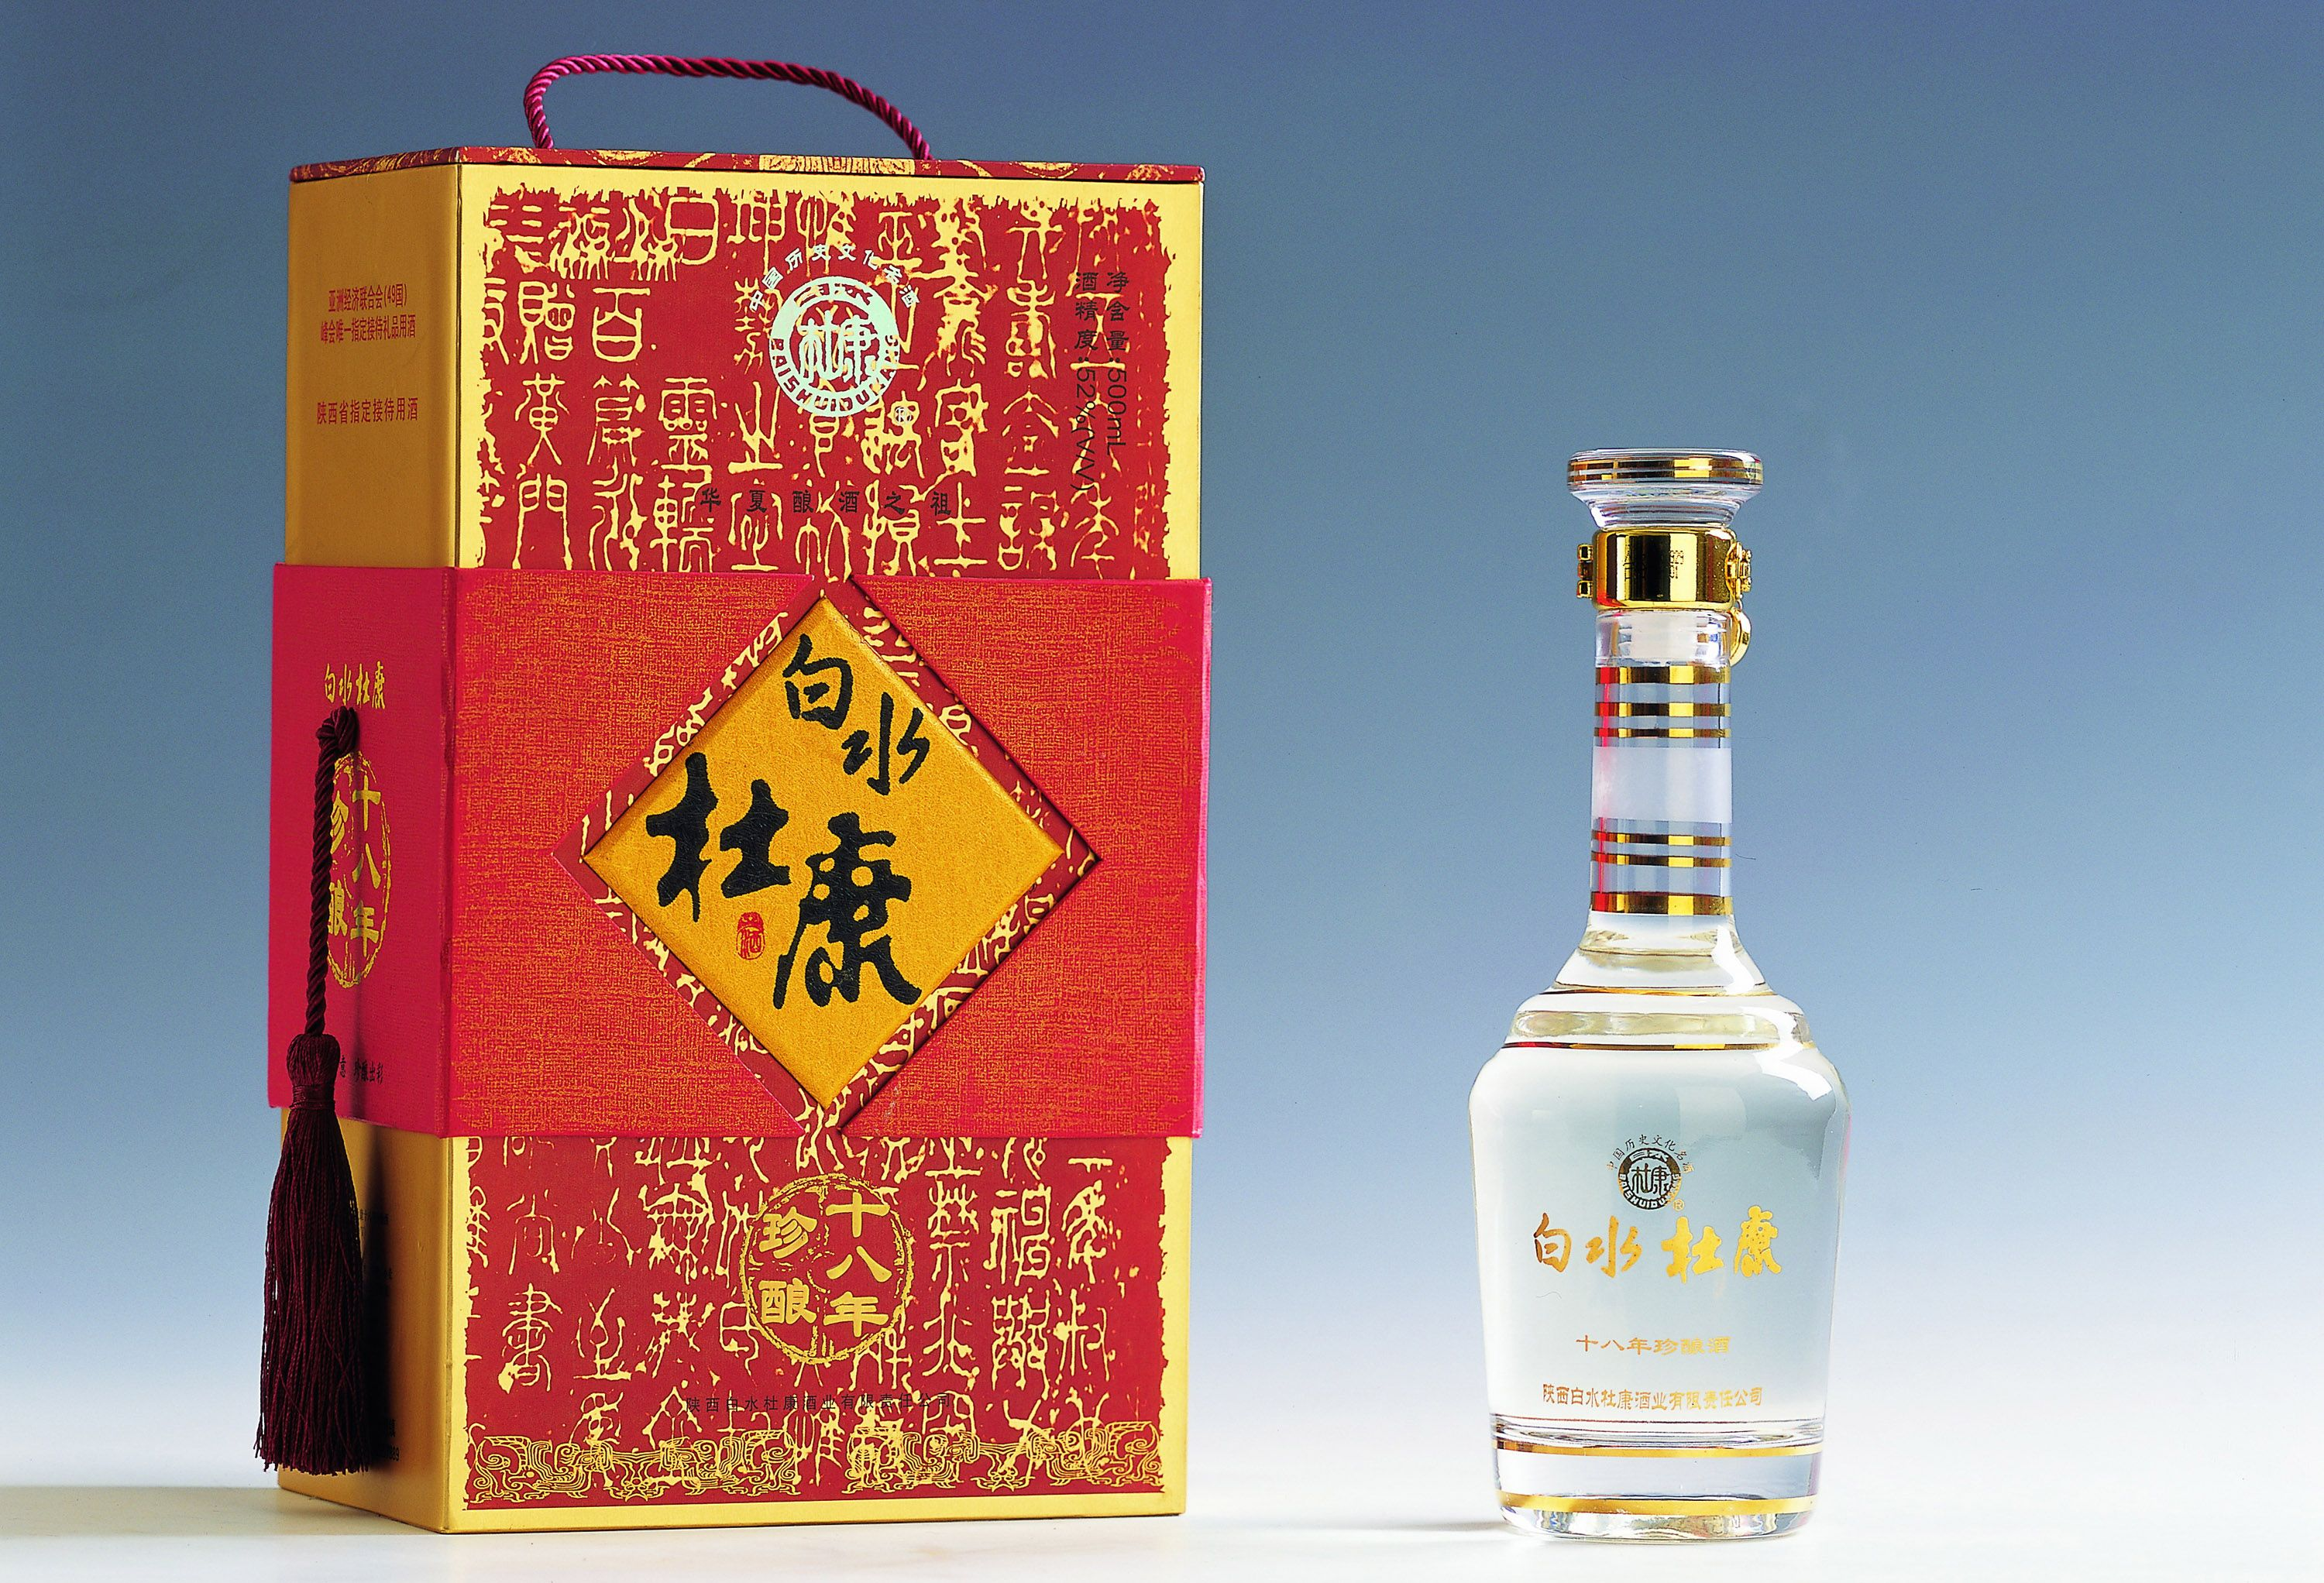 Baishui Dukang Liquor China Beautiful Bottle And Box Pd Bottle Bottle Gift Liquor